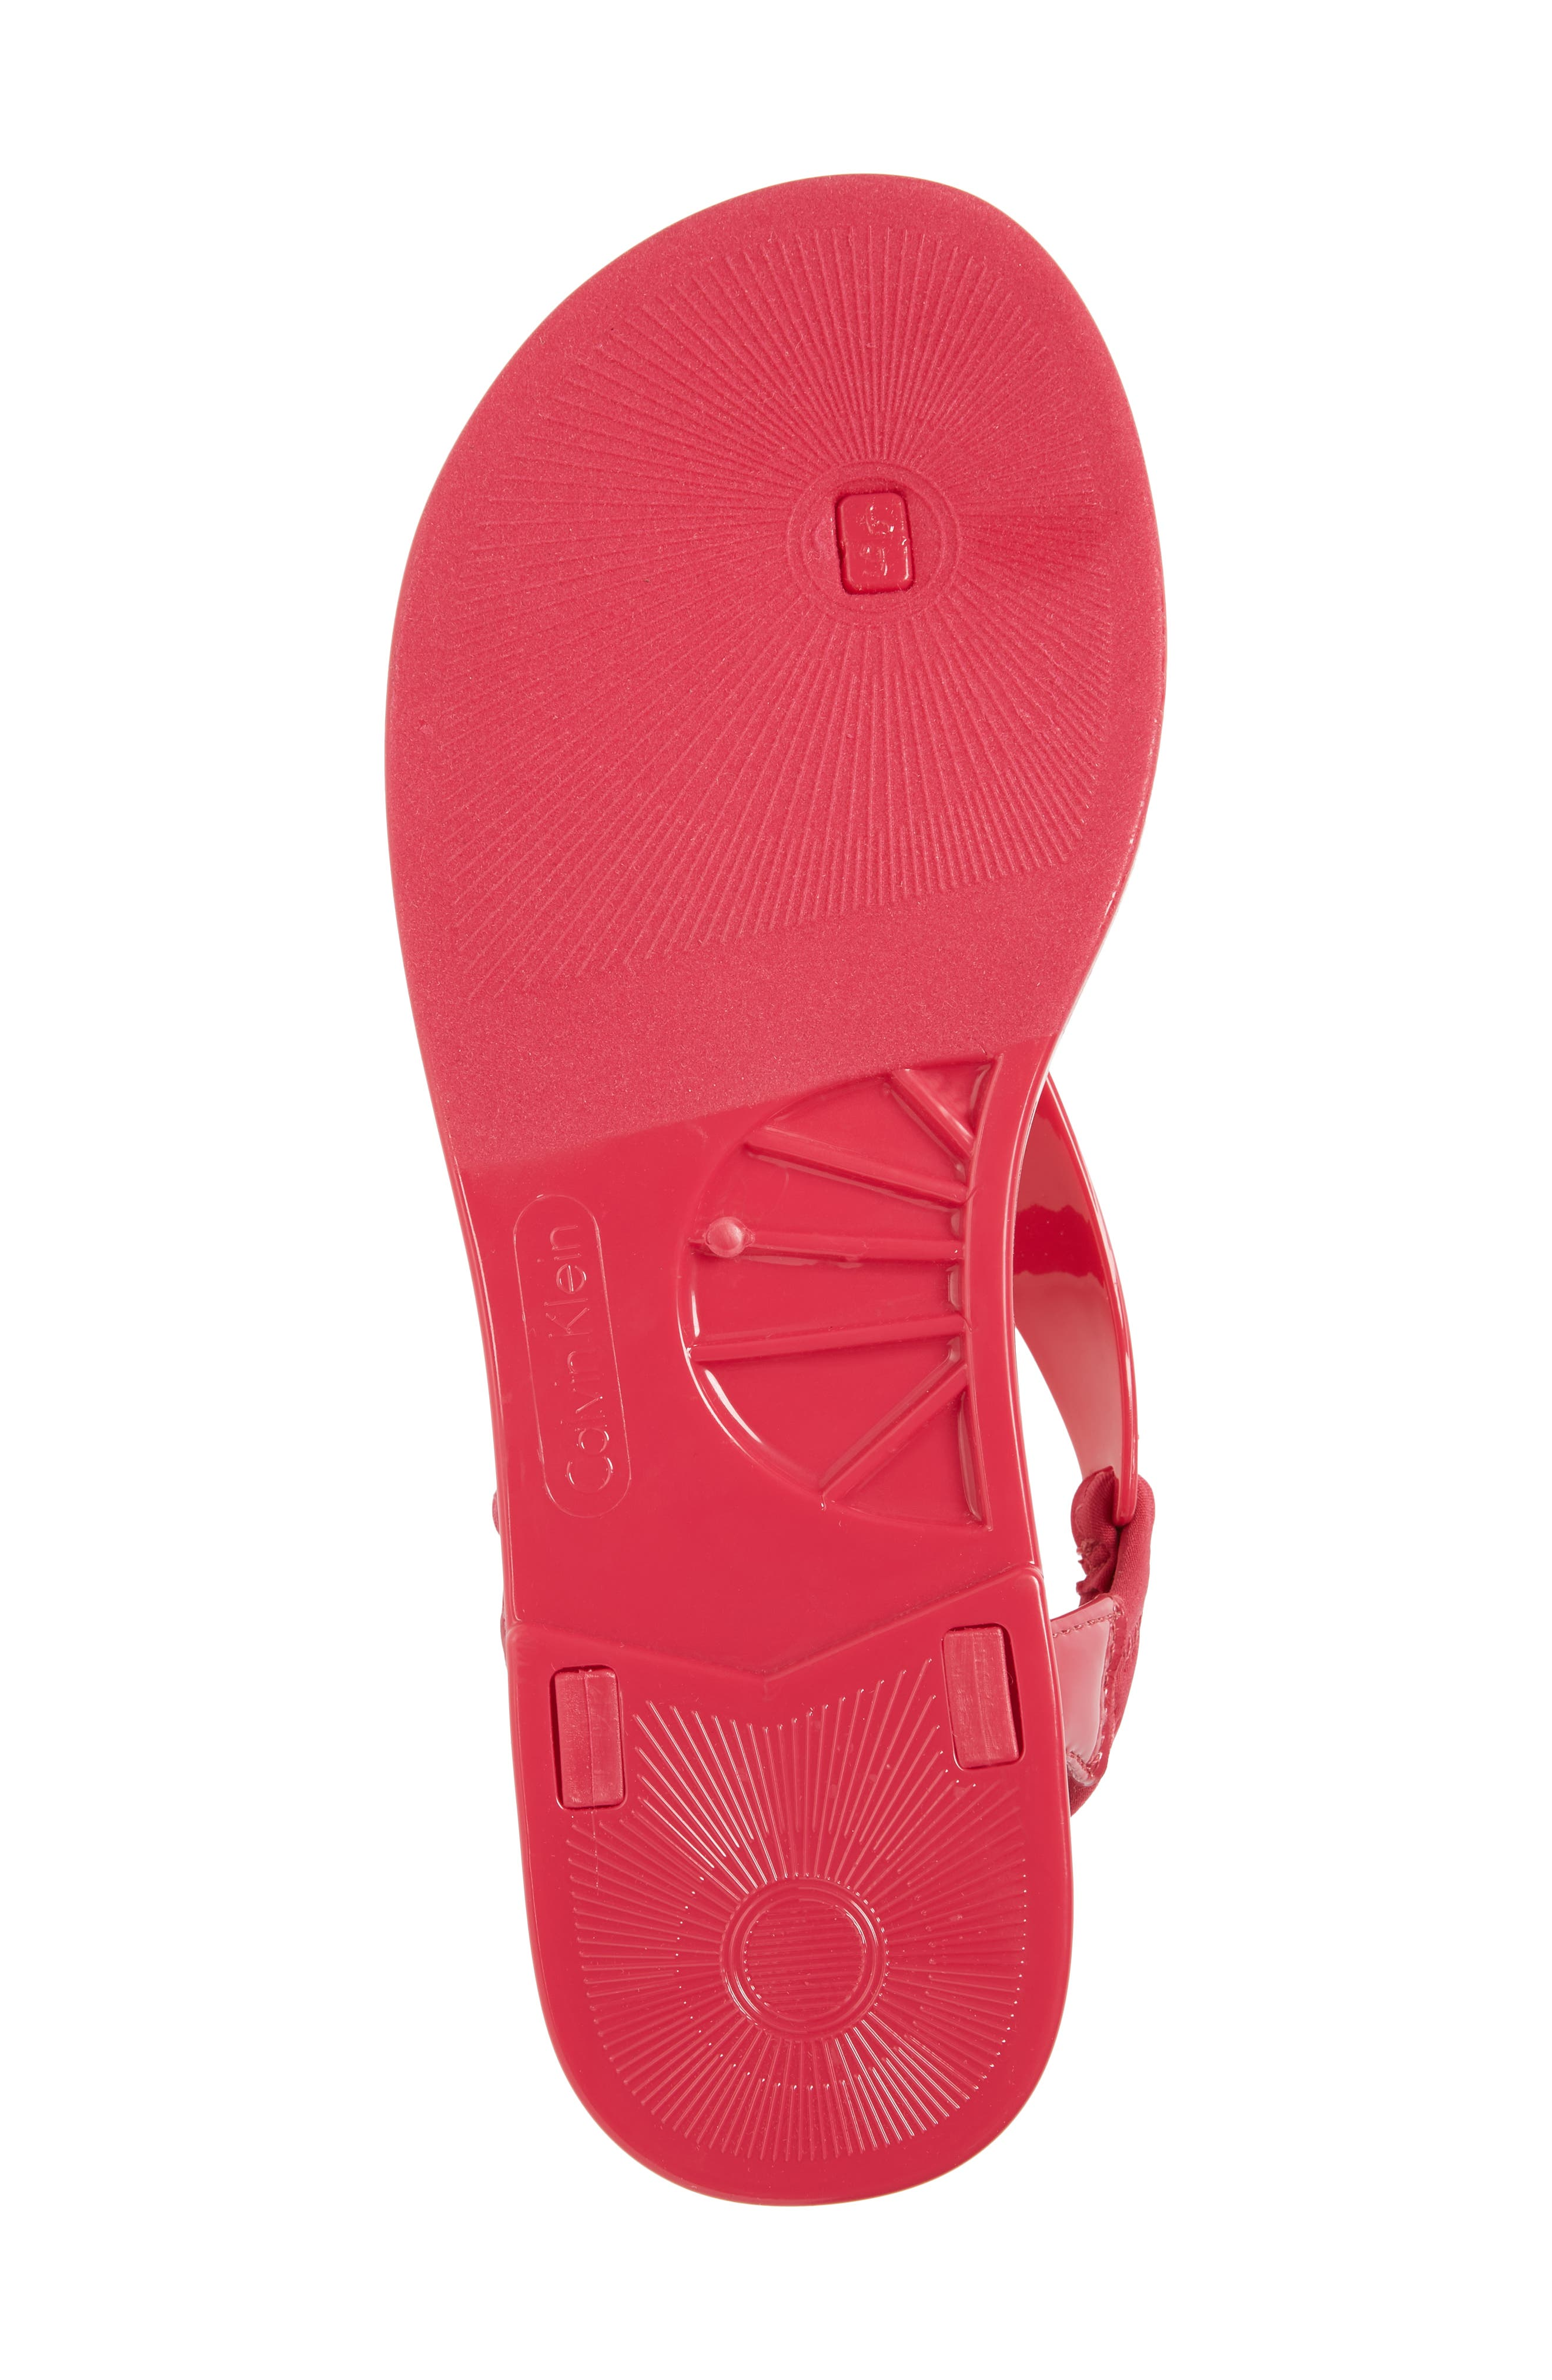 Janny Jelly Sandal,                             Alternate thumbnail 6, color,                             Hibiscus Pink